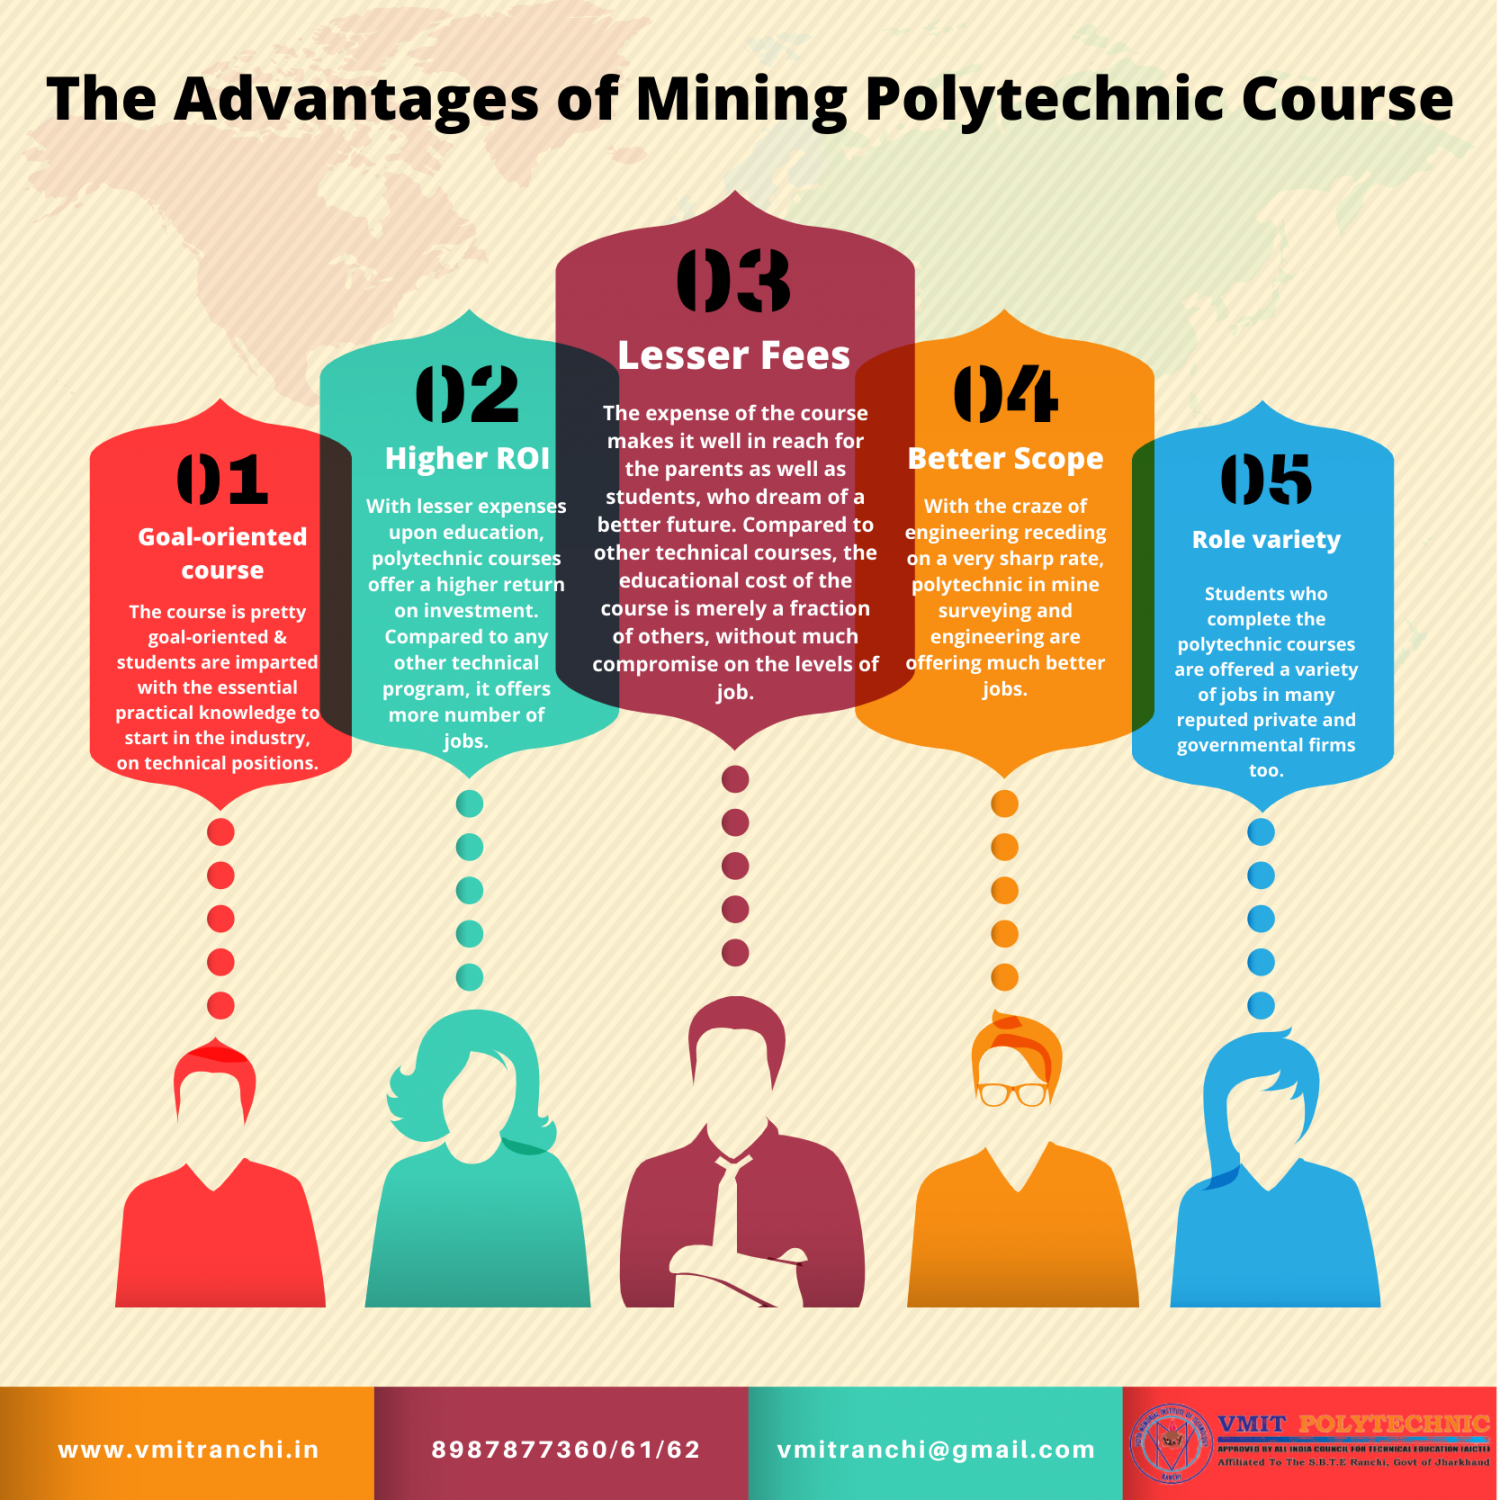 5 Advantages of Mining Polytechnic Course Infographic